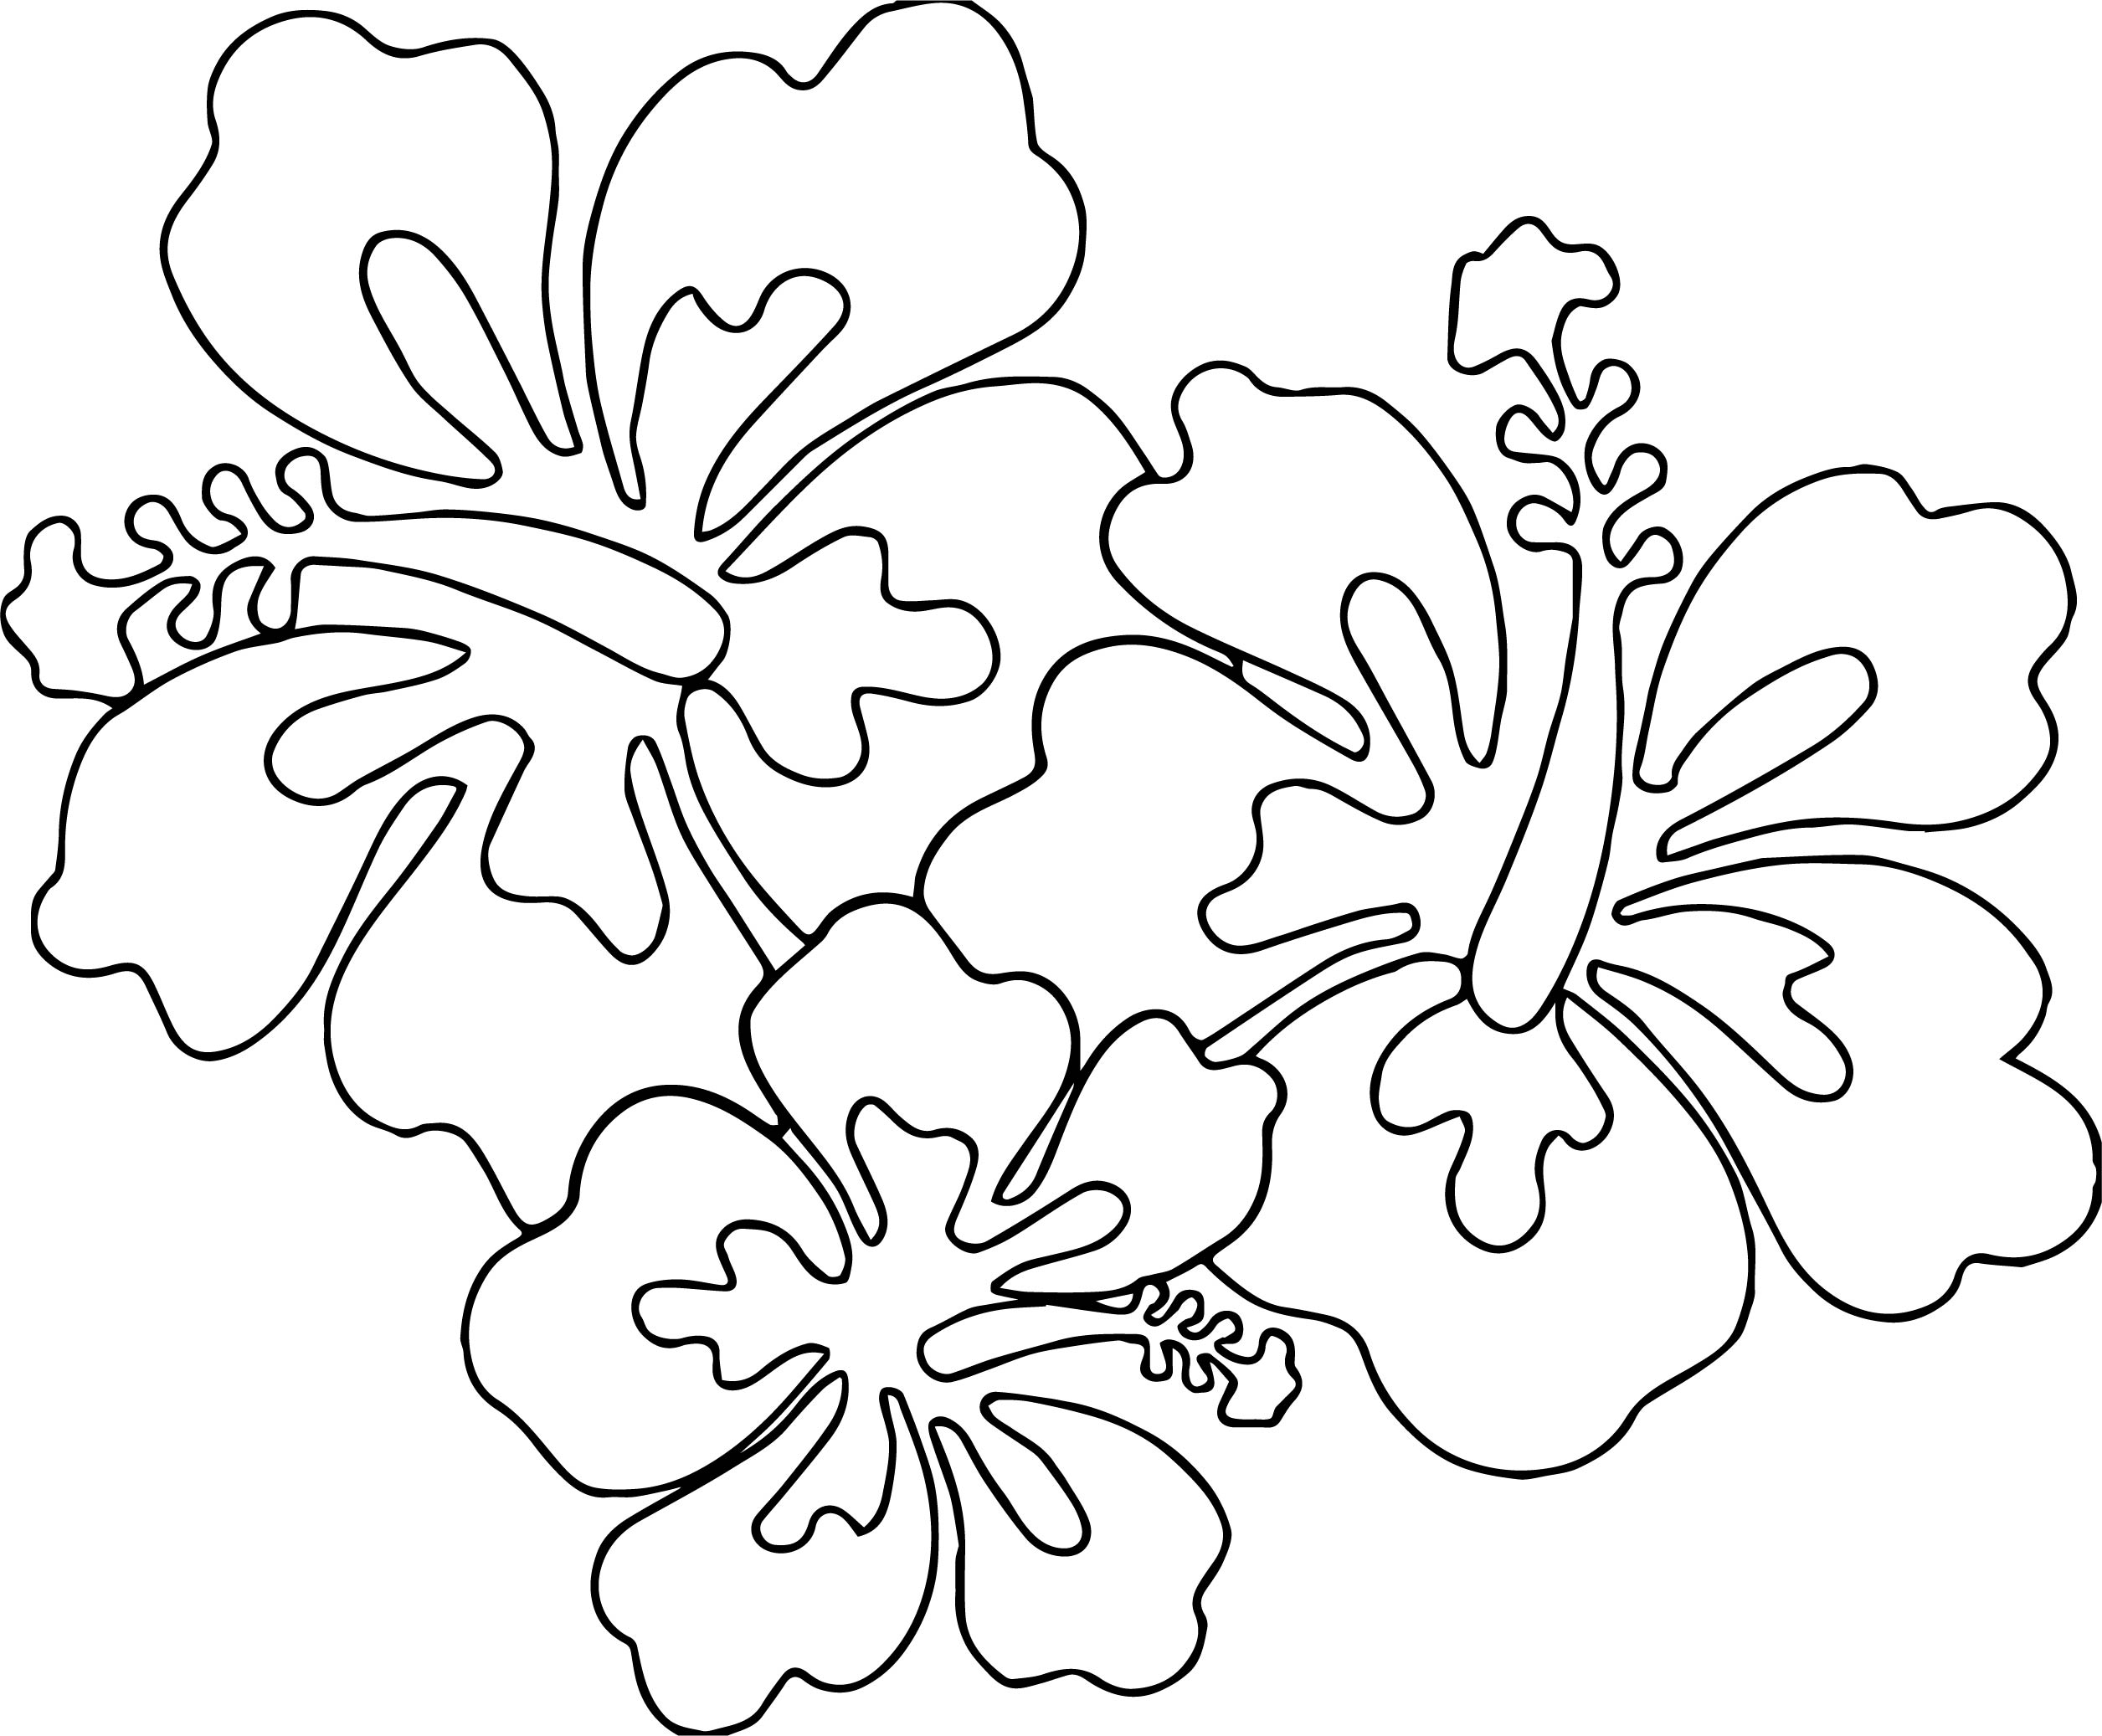 8 Hawaiian Coloring Pages for Kids - Red Ted Art - Make crafting ... | 2074x2511